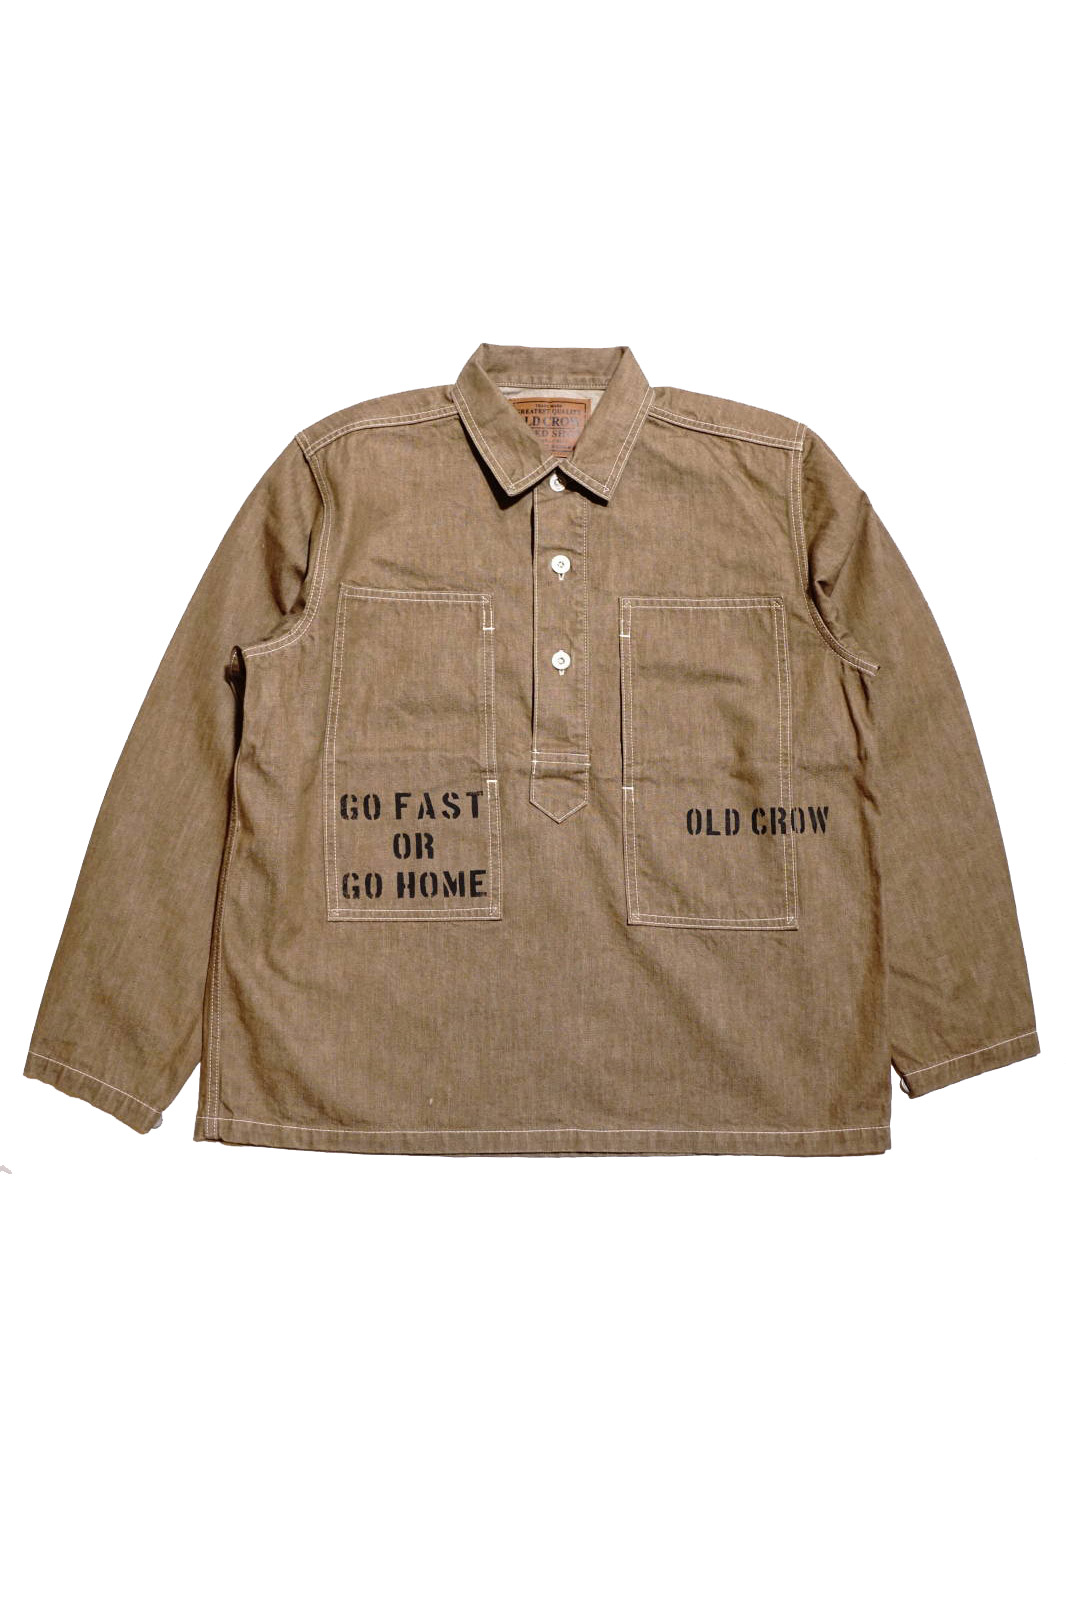 OLD CROW GLORY CROW - L/S PULLOVER SHIRTS JACKET BROWN